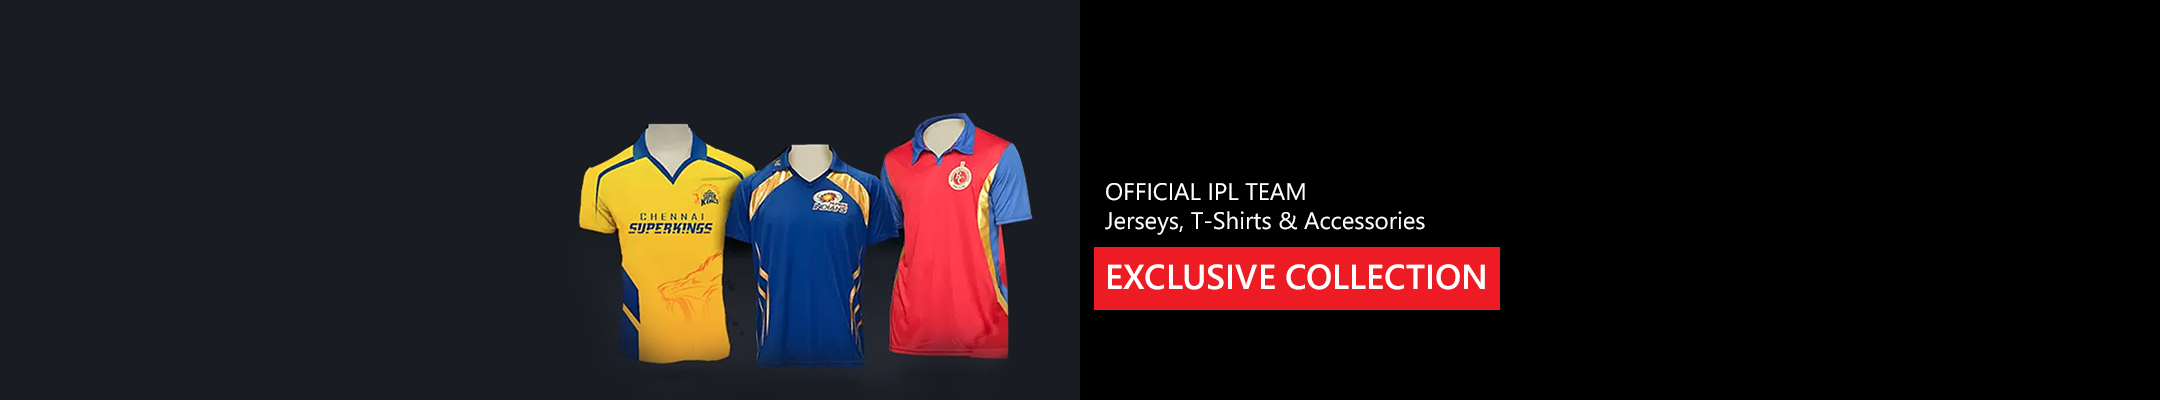 Official IPL Team Jerseys, T-Shirts & Accessories